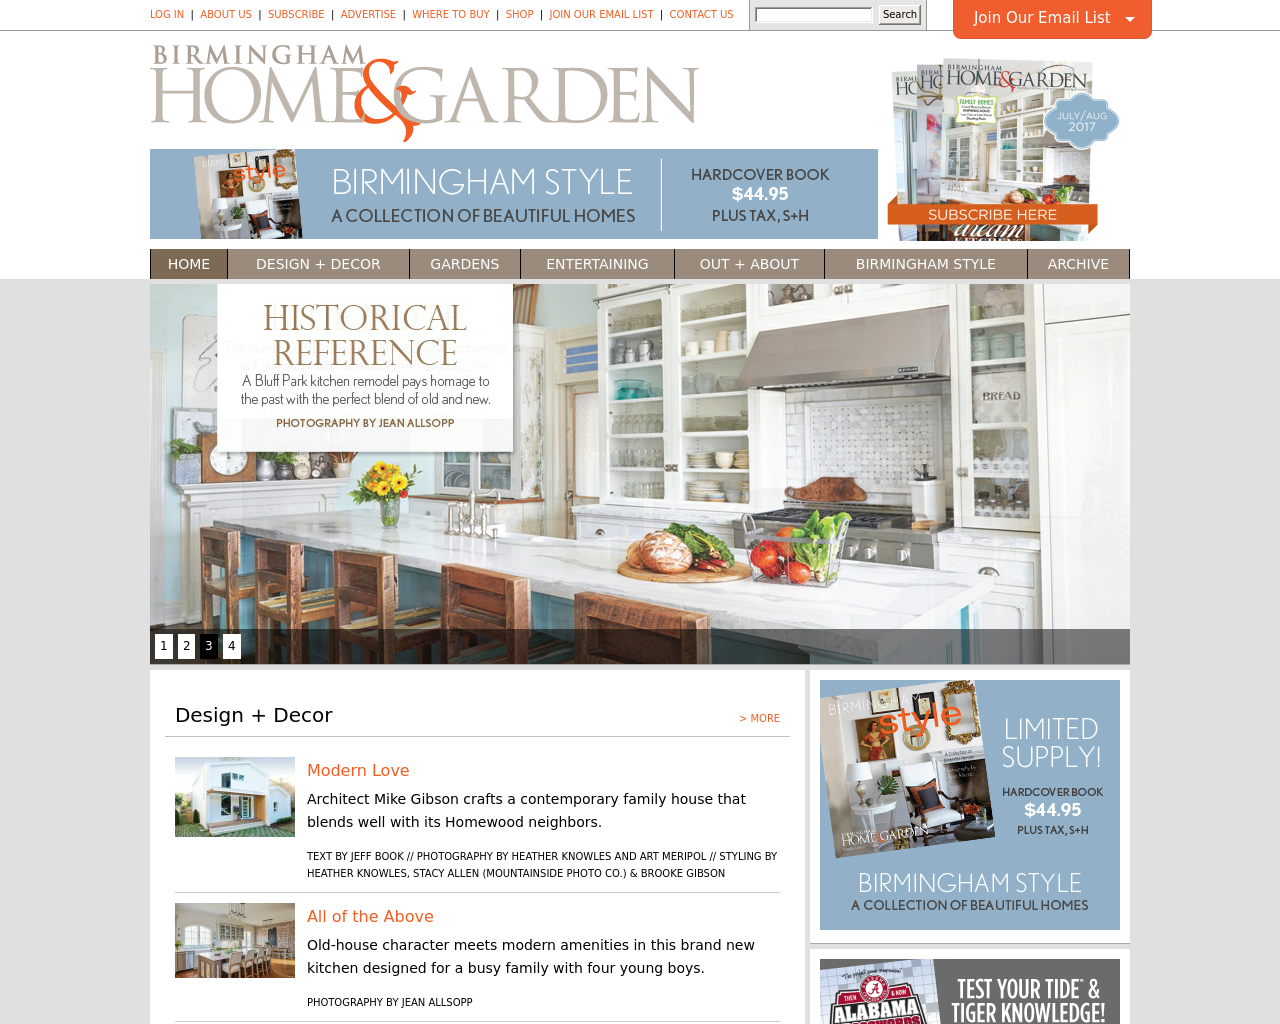 Birmingham-Home-&-Garden-Advertising-Reviews-Pricing